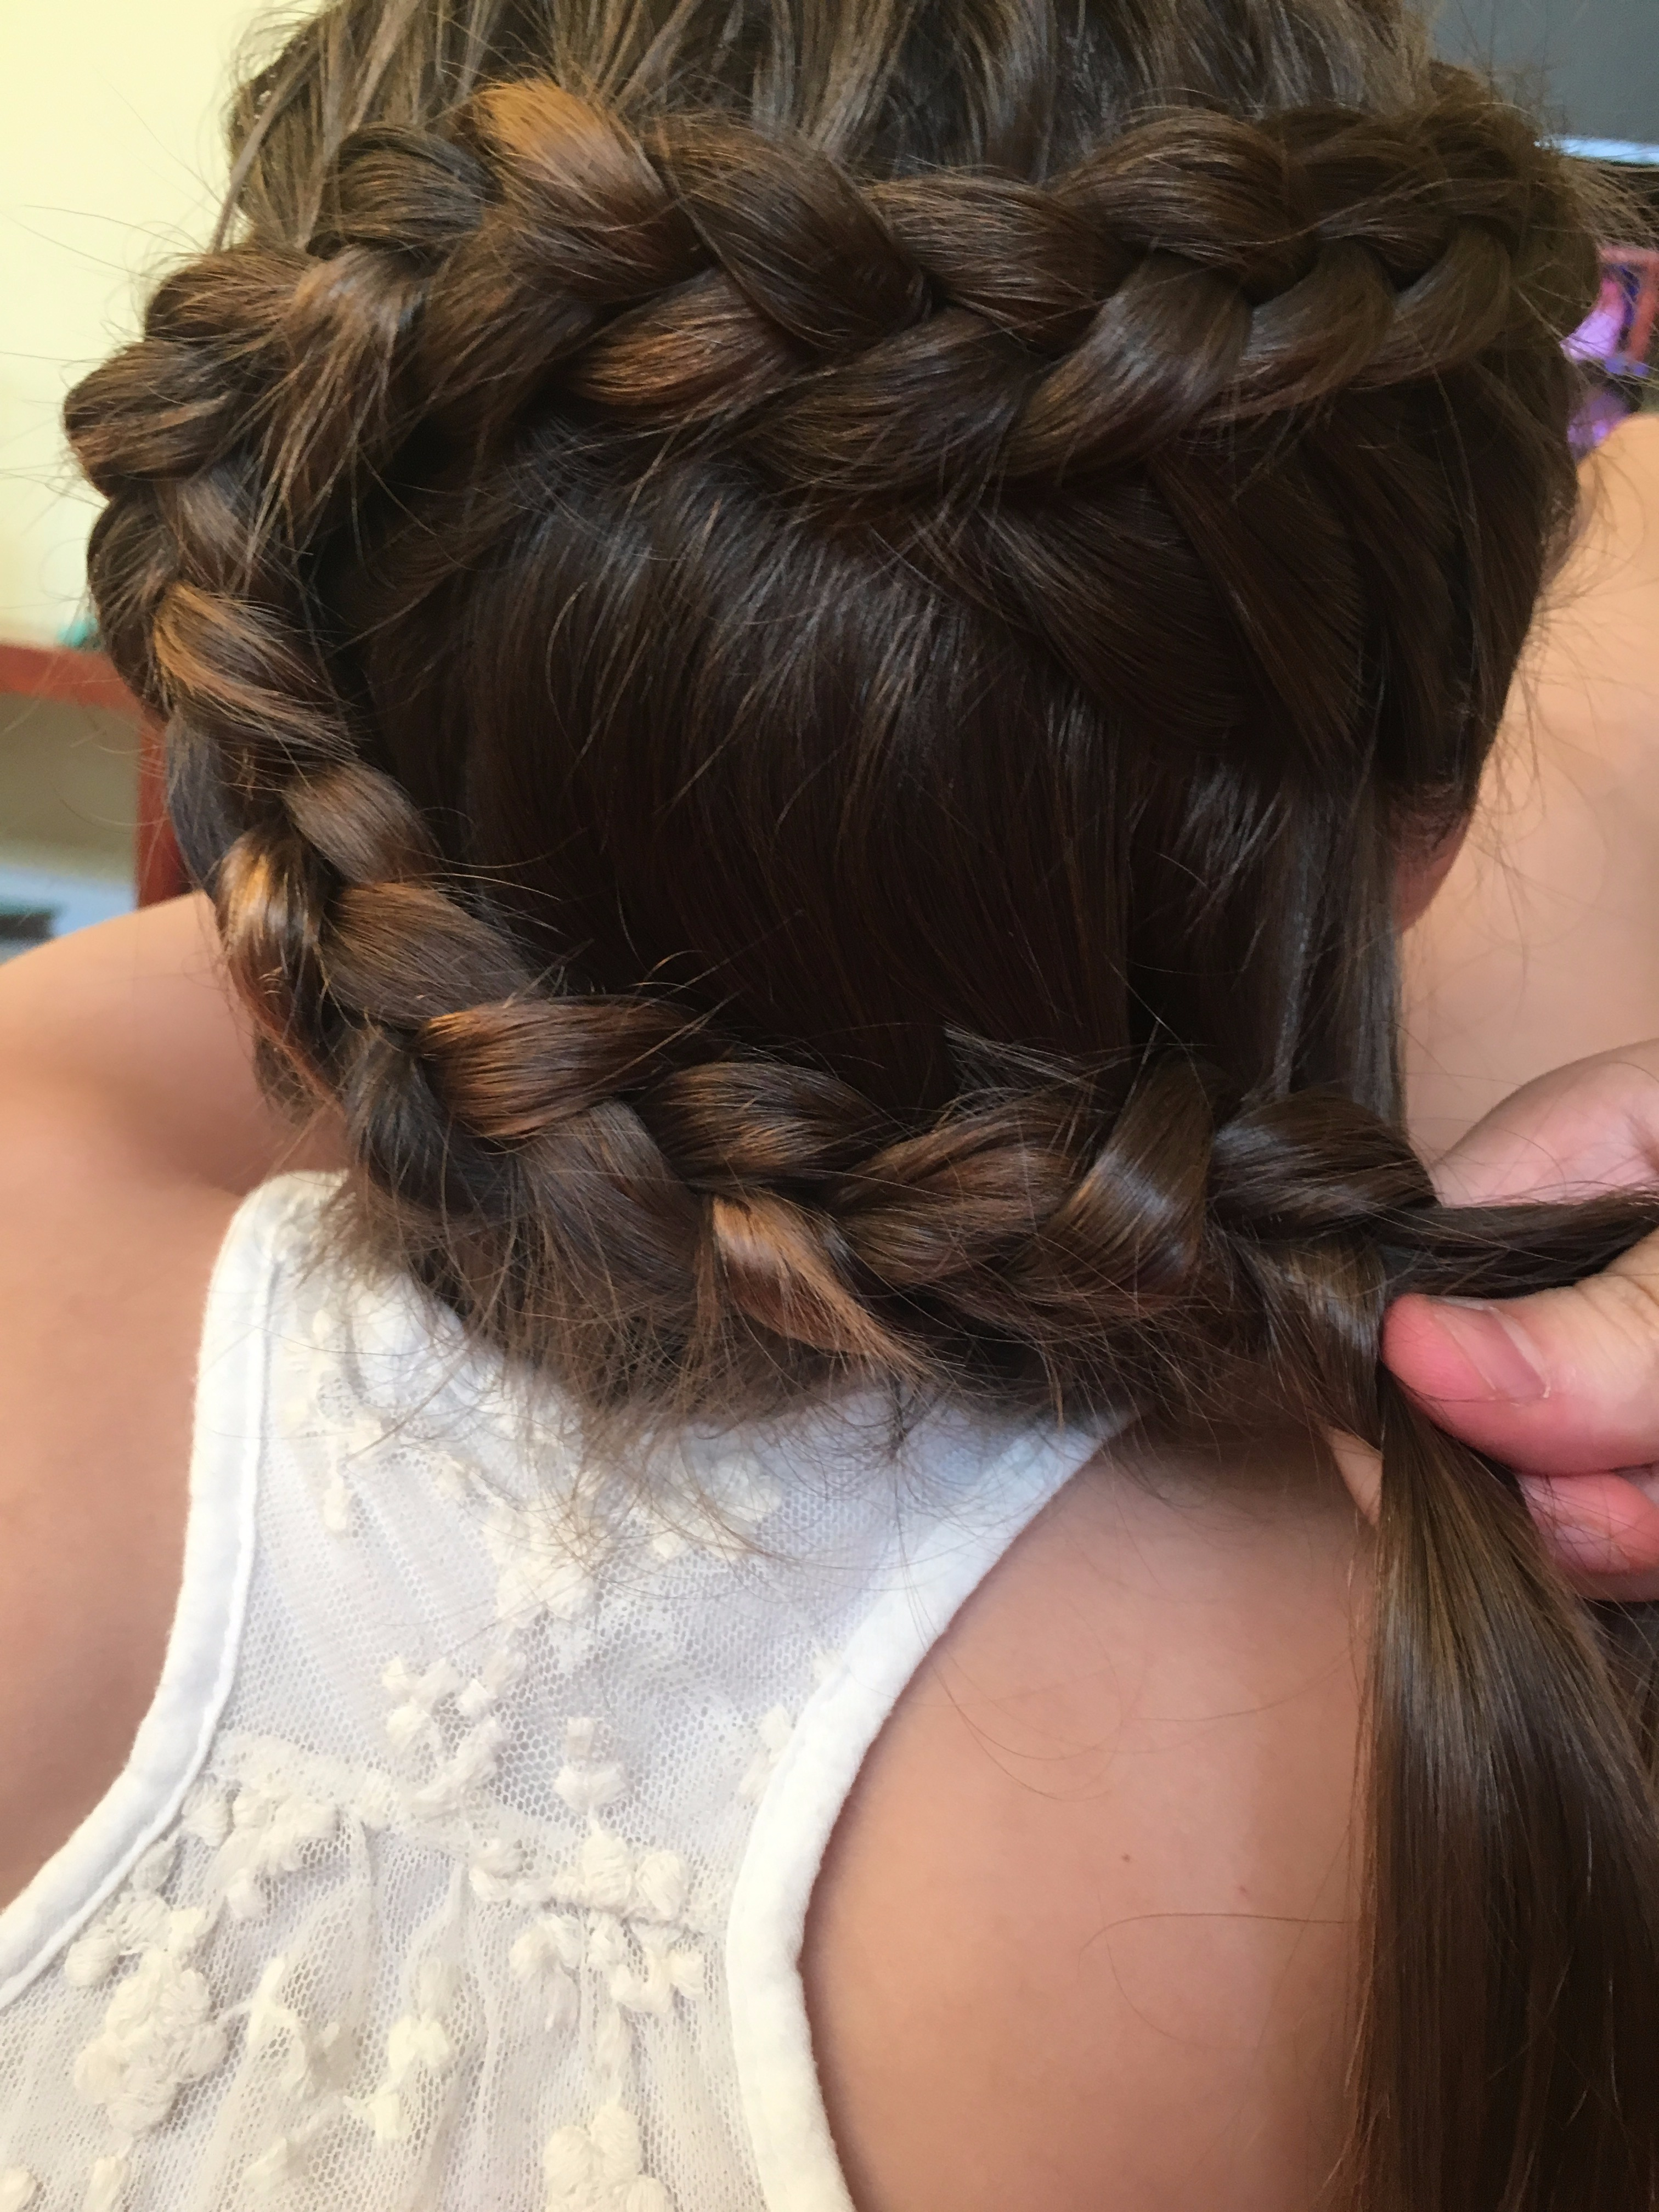 Picture of Finishing Off the Braid